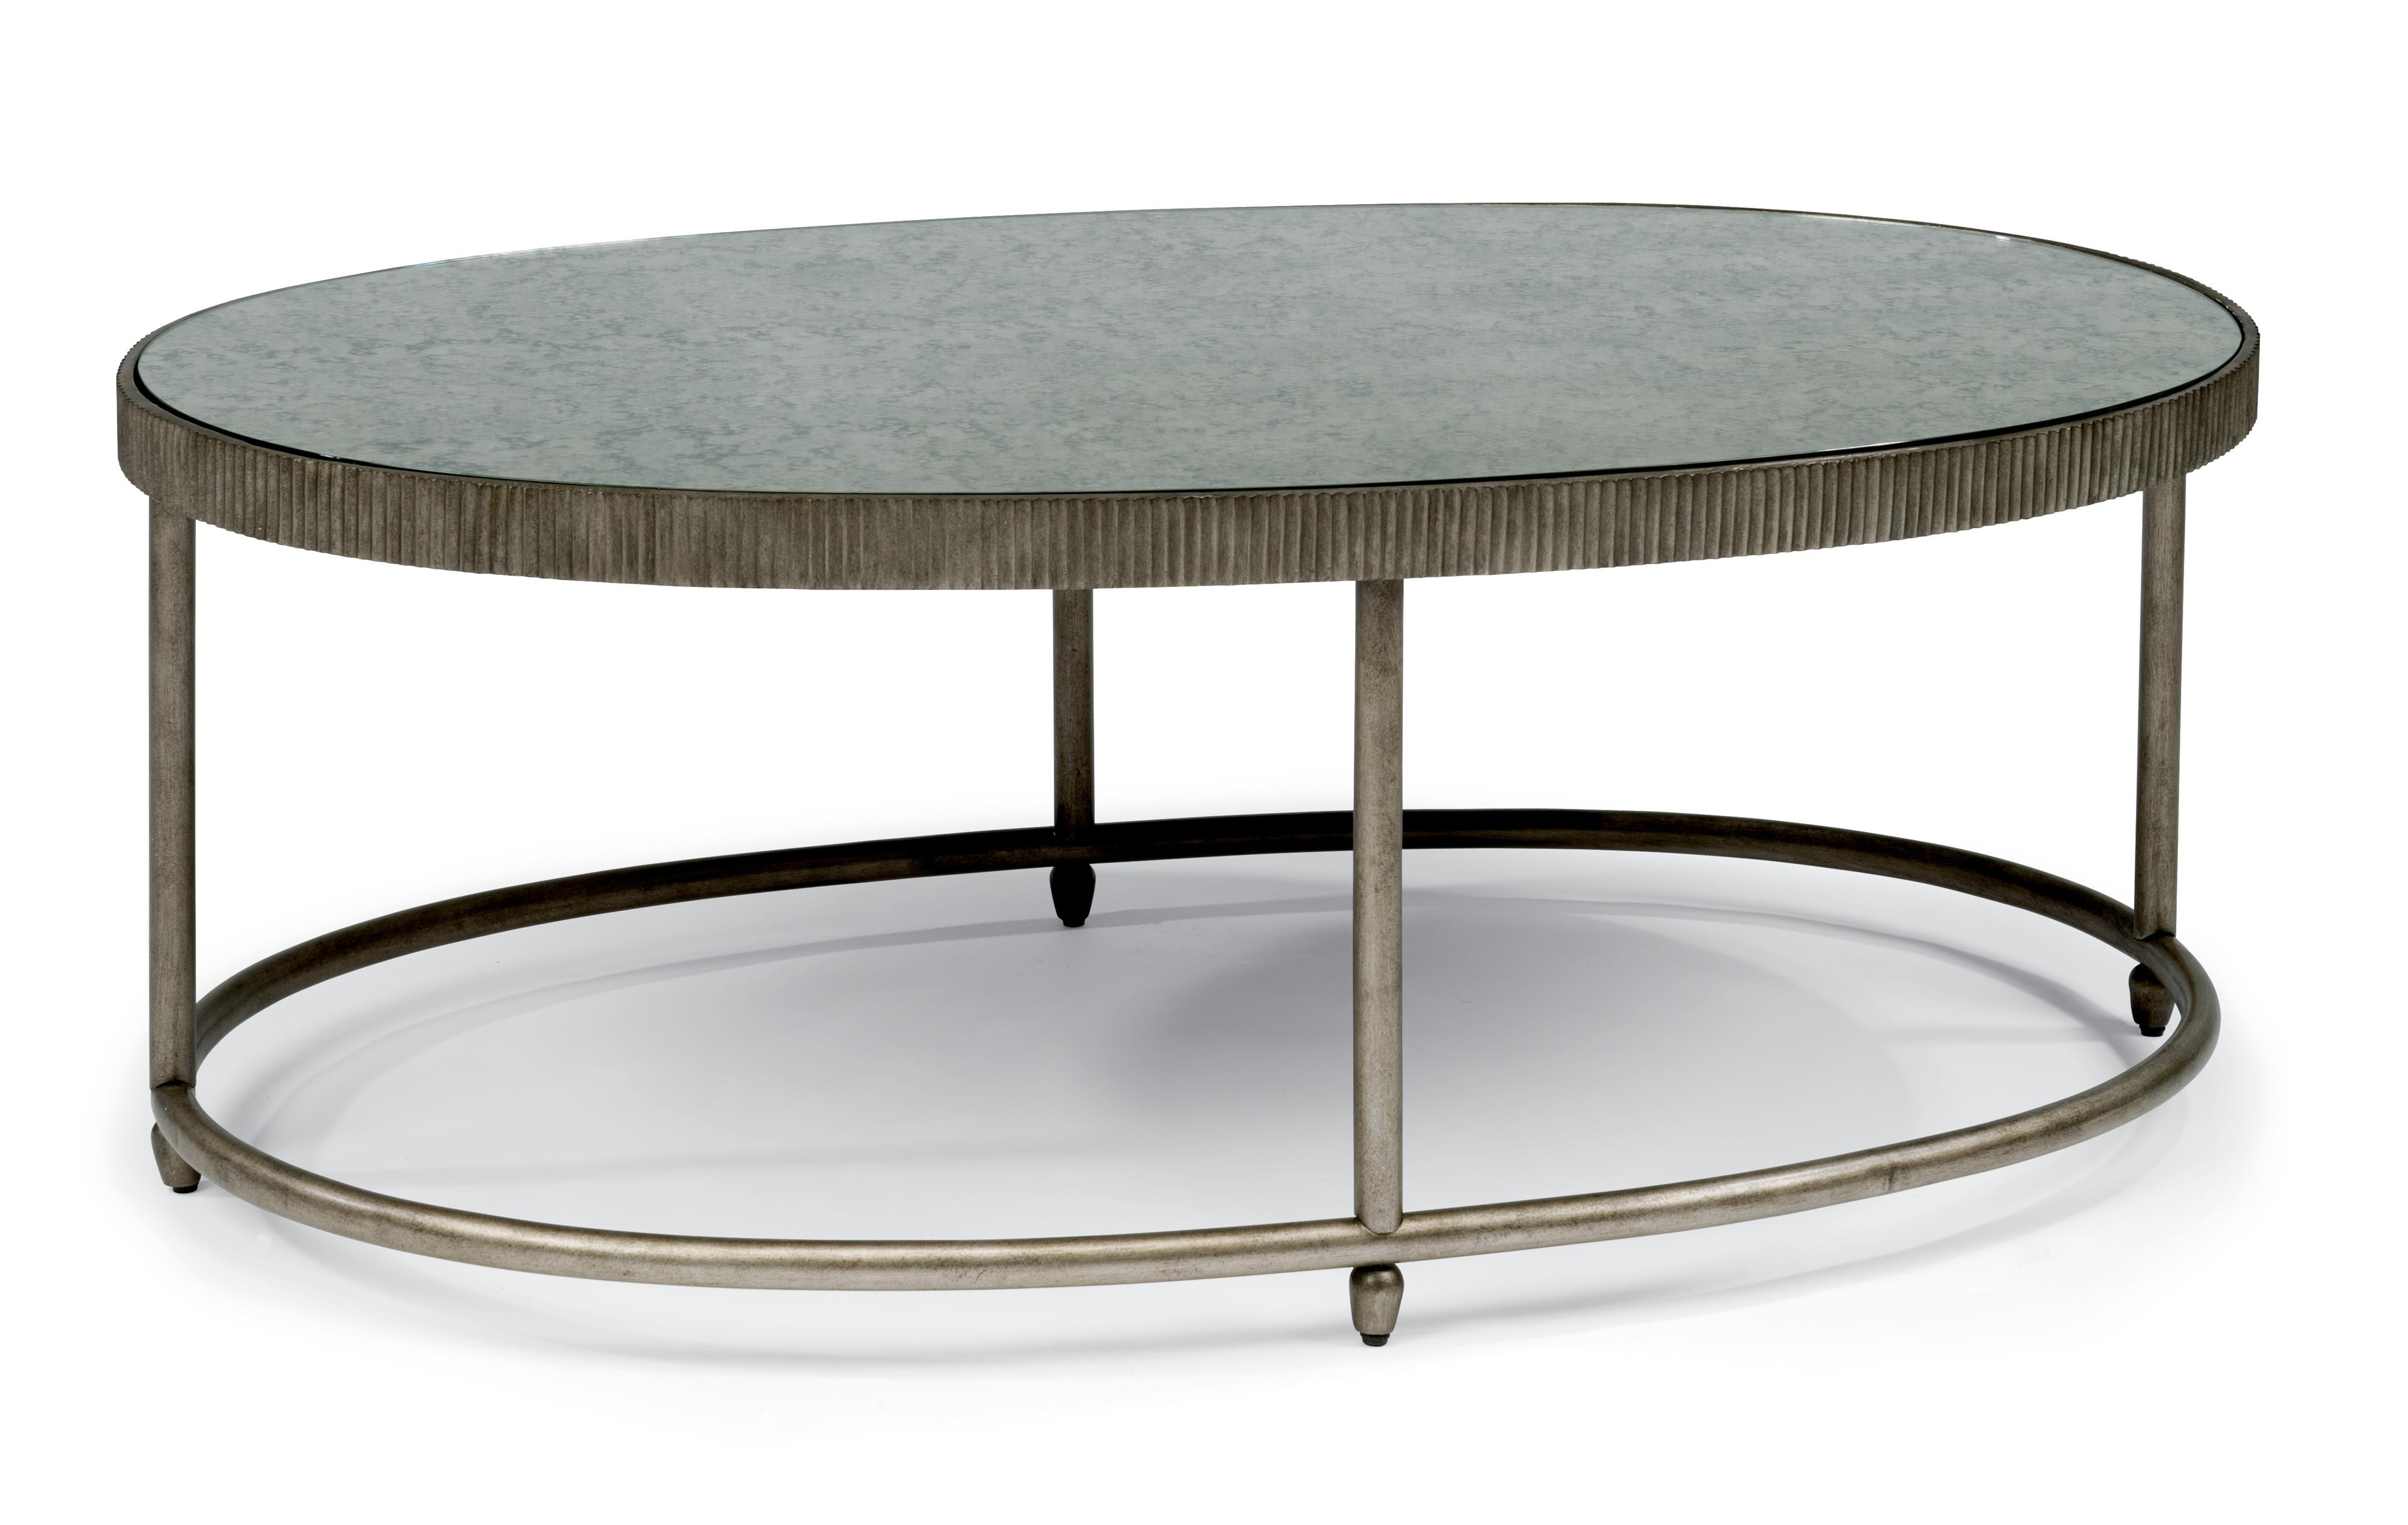 Transitional Oval Cocktail Table with Antiqued Mirror Top by